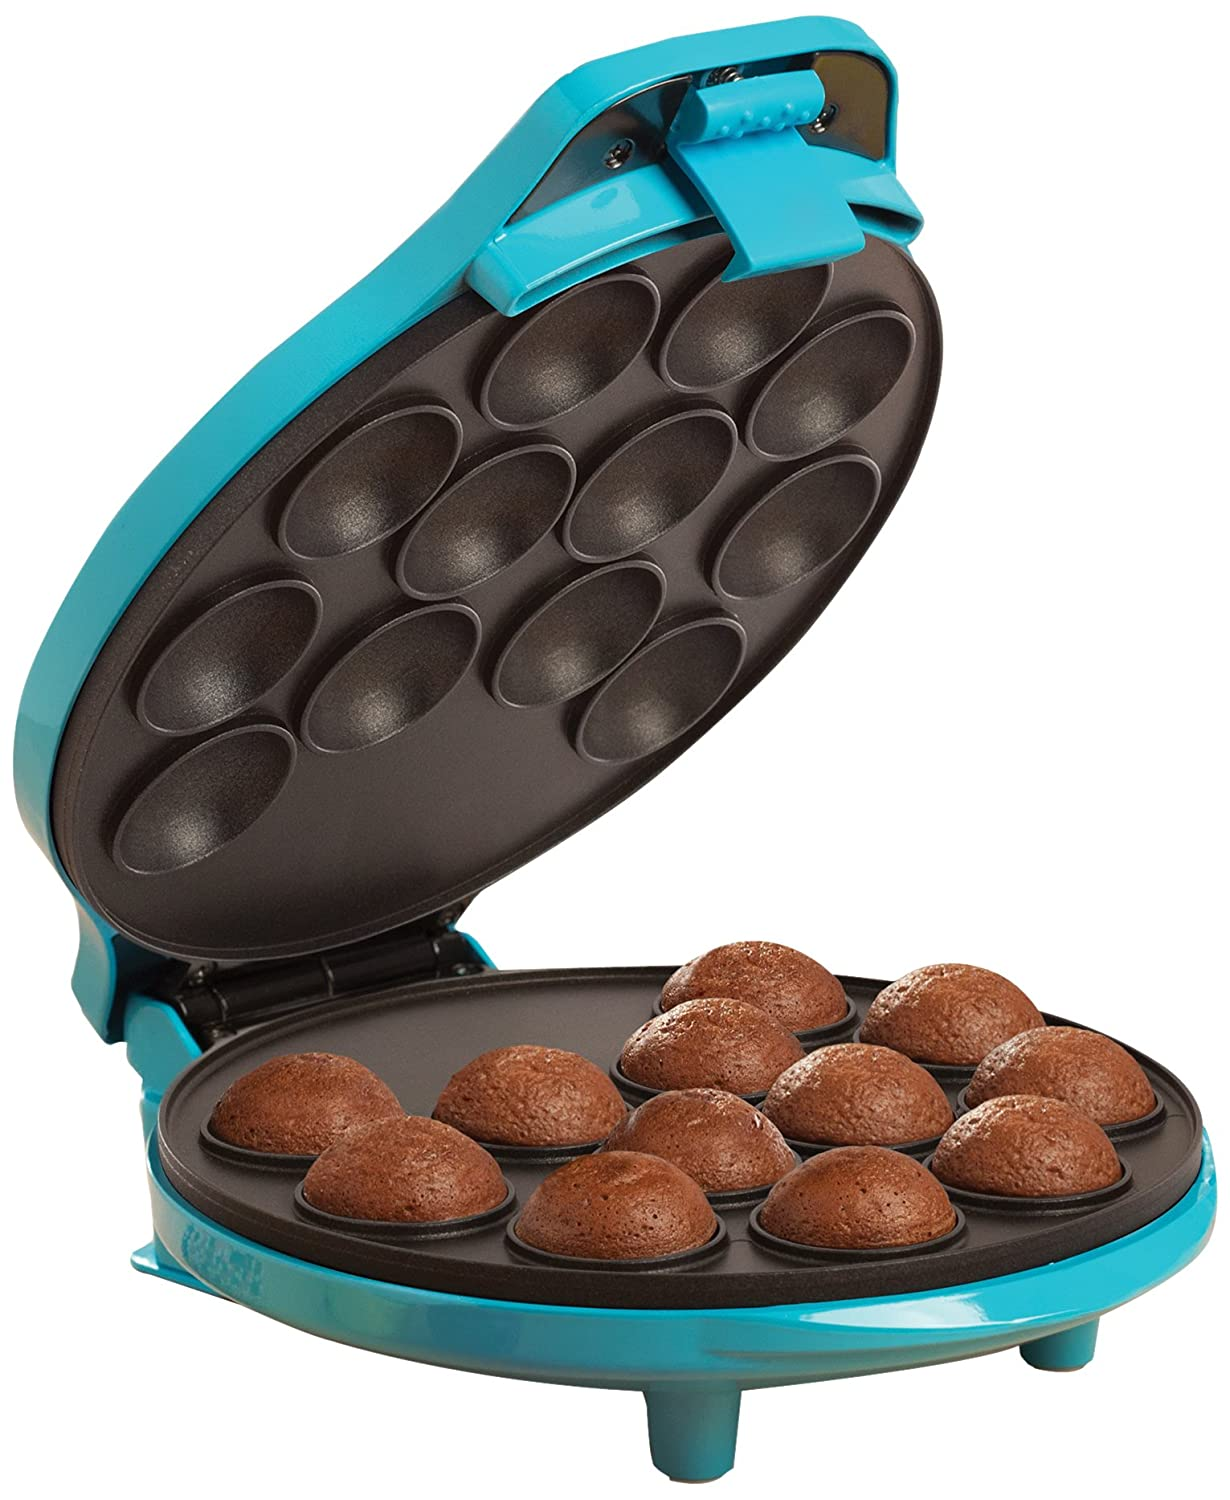 bella cake pop maker free ship to store at bestbuy. Black Bedroom Furniture Sets. Home Design Ideas